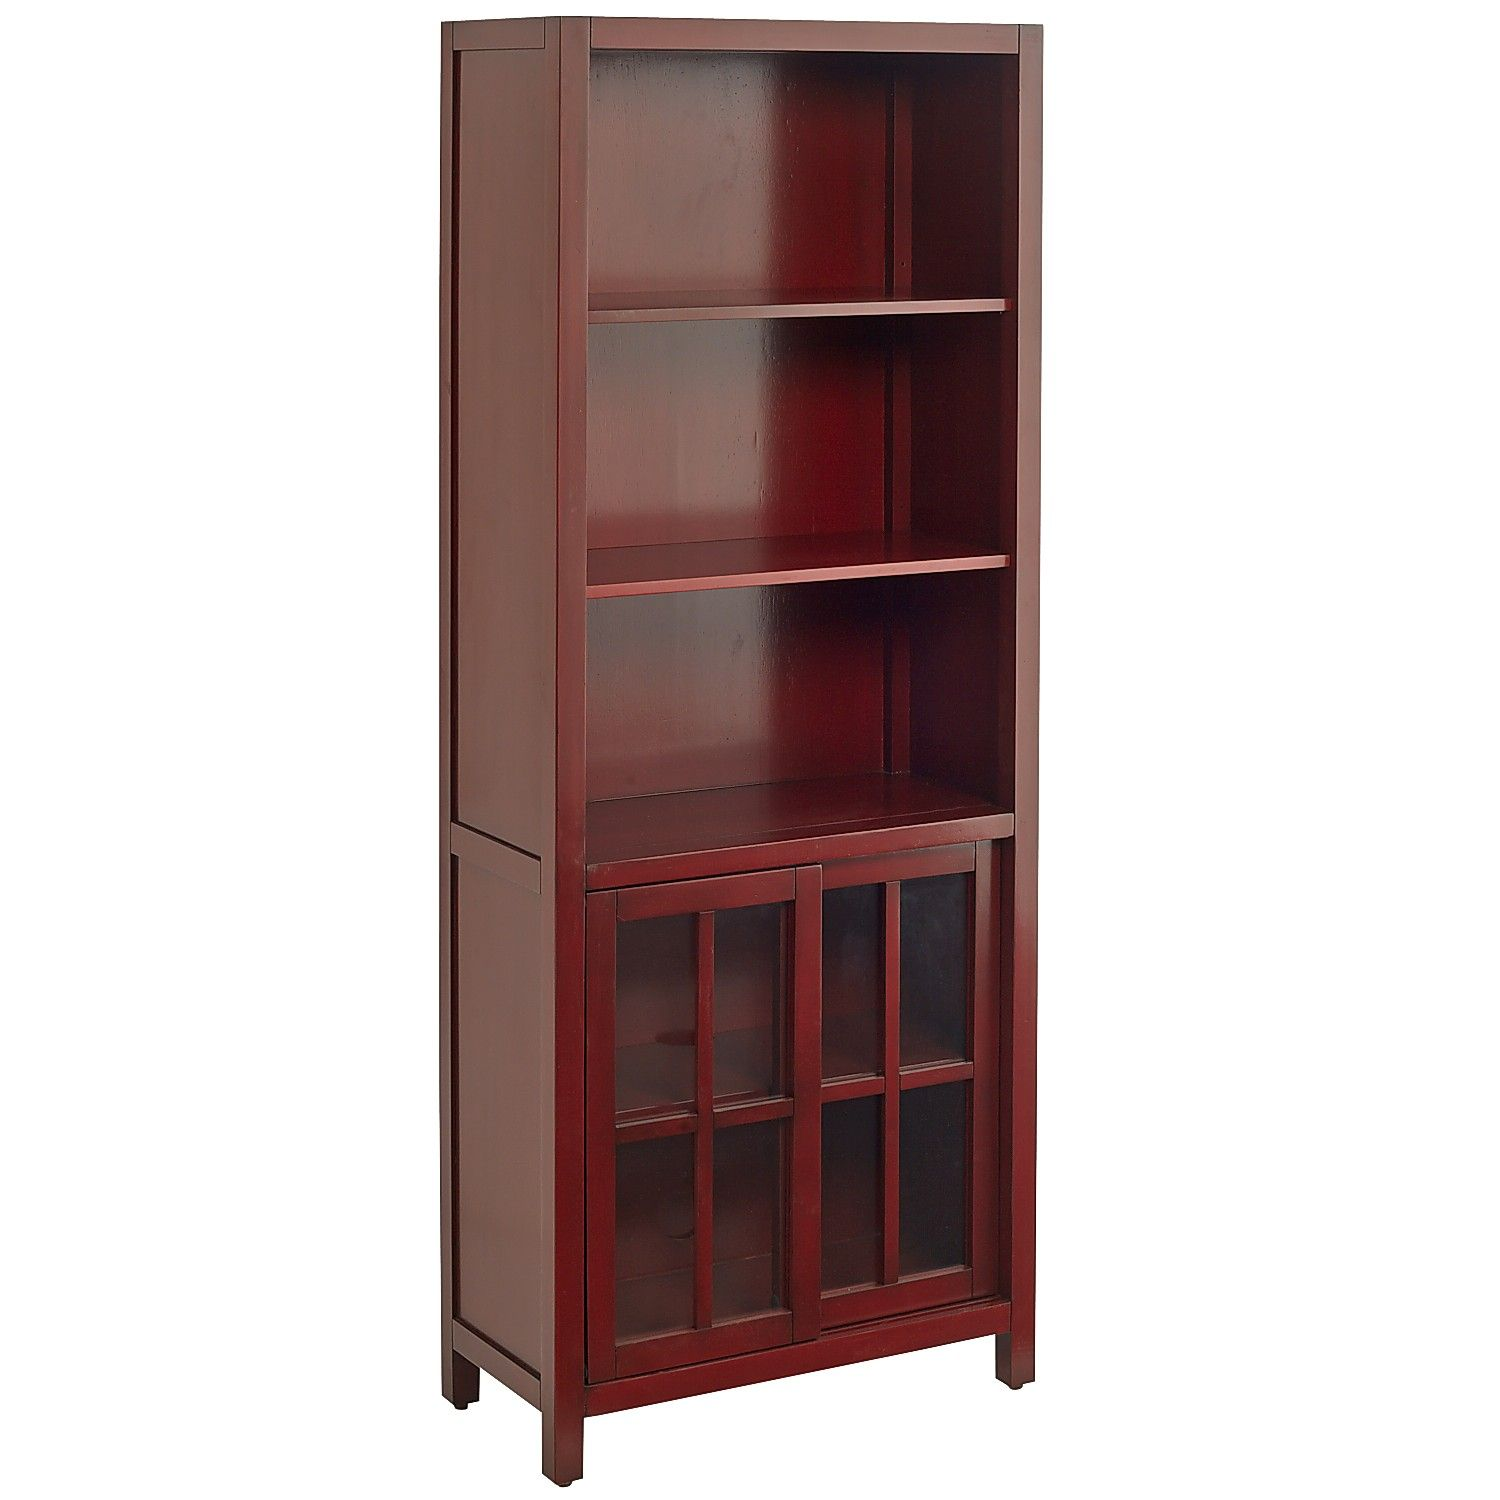 with living cute doors elegant bookshelf cabinets storage full built glass in size lovely rooms of bookcase inspirations cabinet awesome bookcases large corner shelf